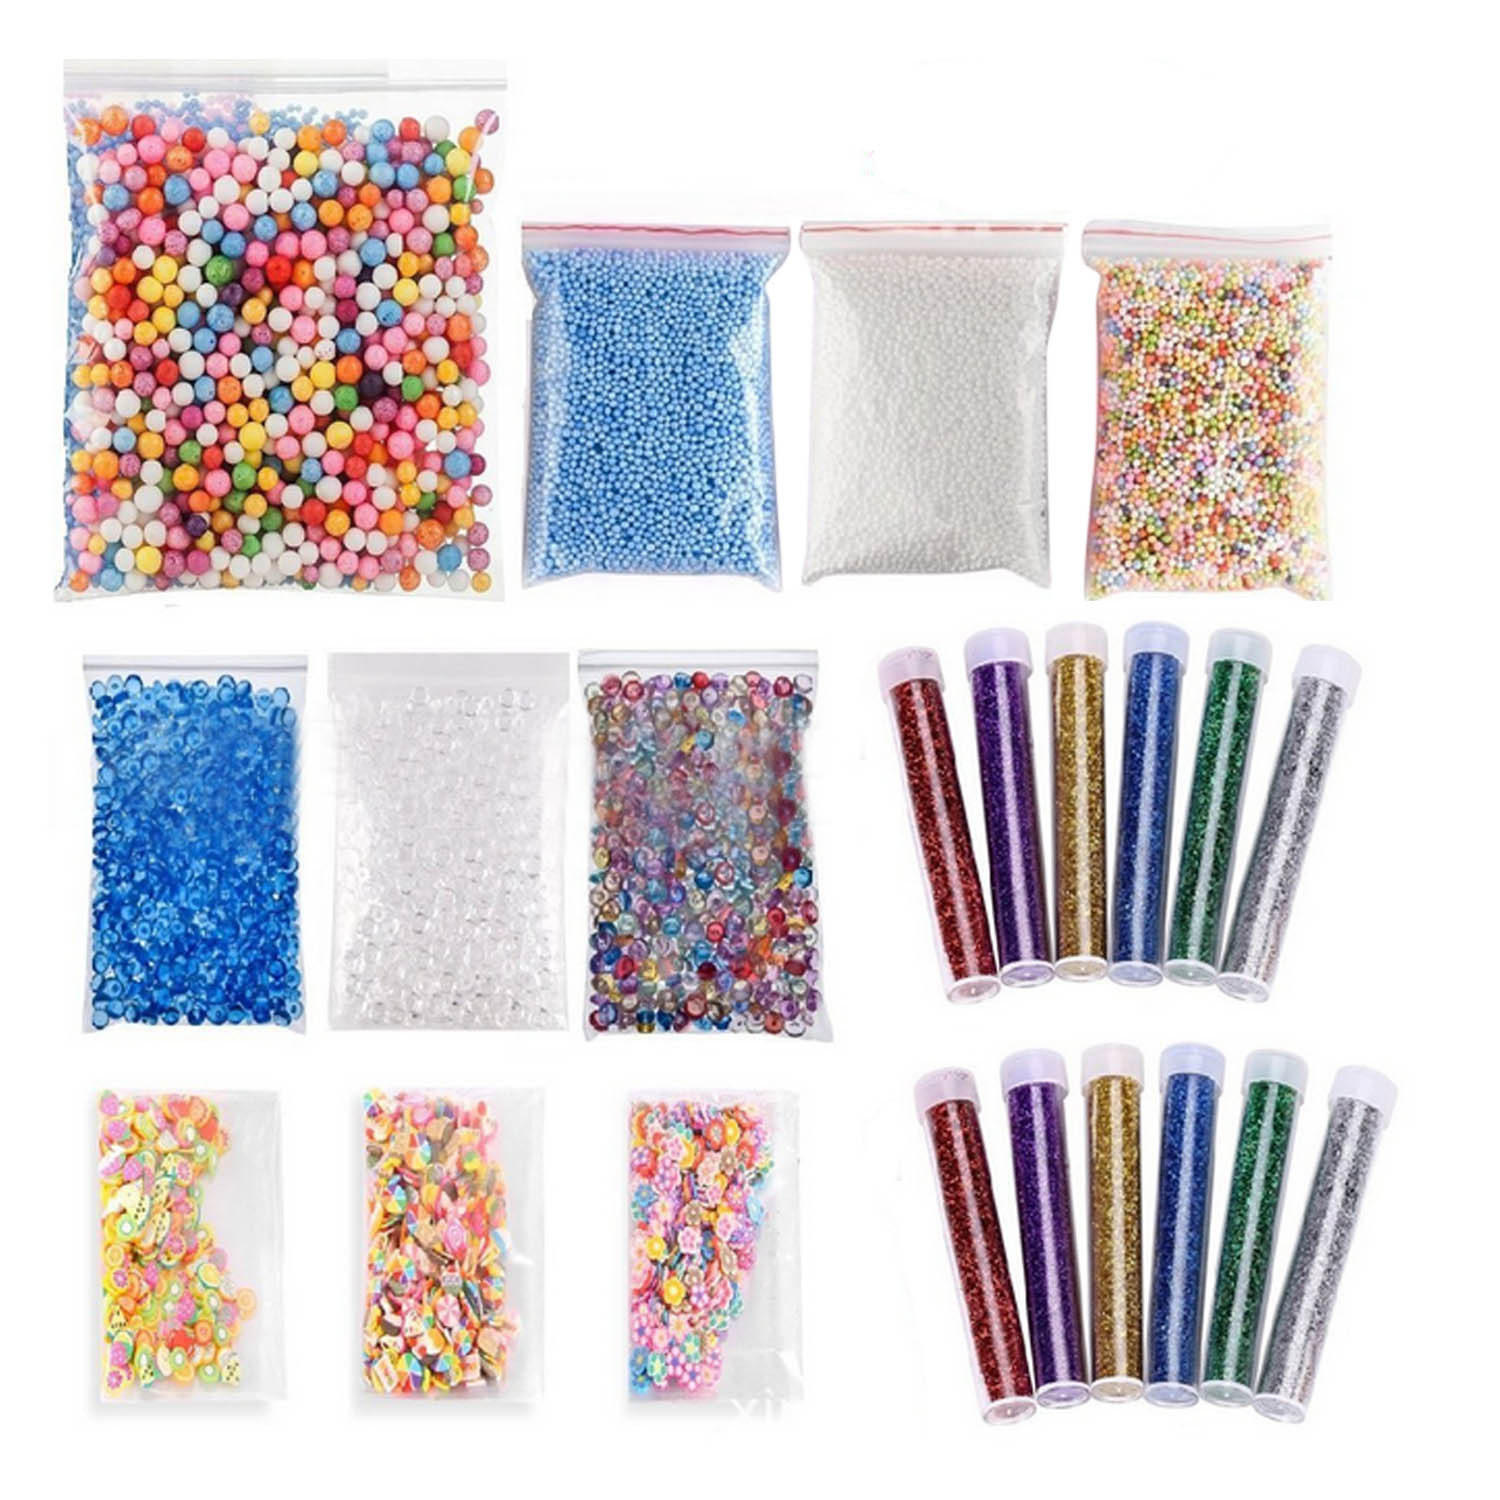 Colorful Styrofoam Beads Foam Balls Glitter Various Shaped Slice Kit for Slime DIY Craft ...